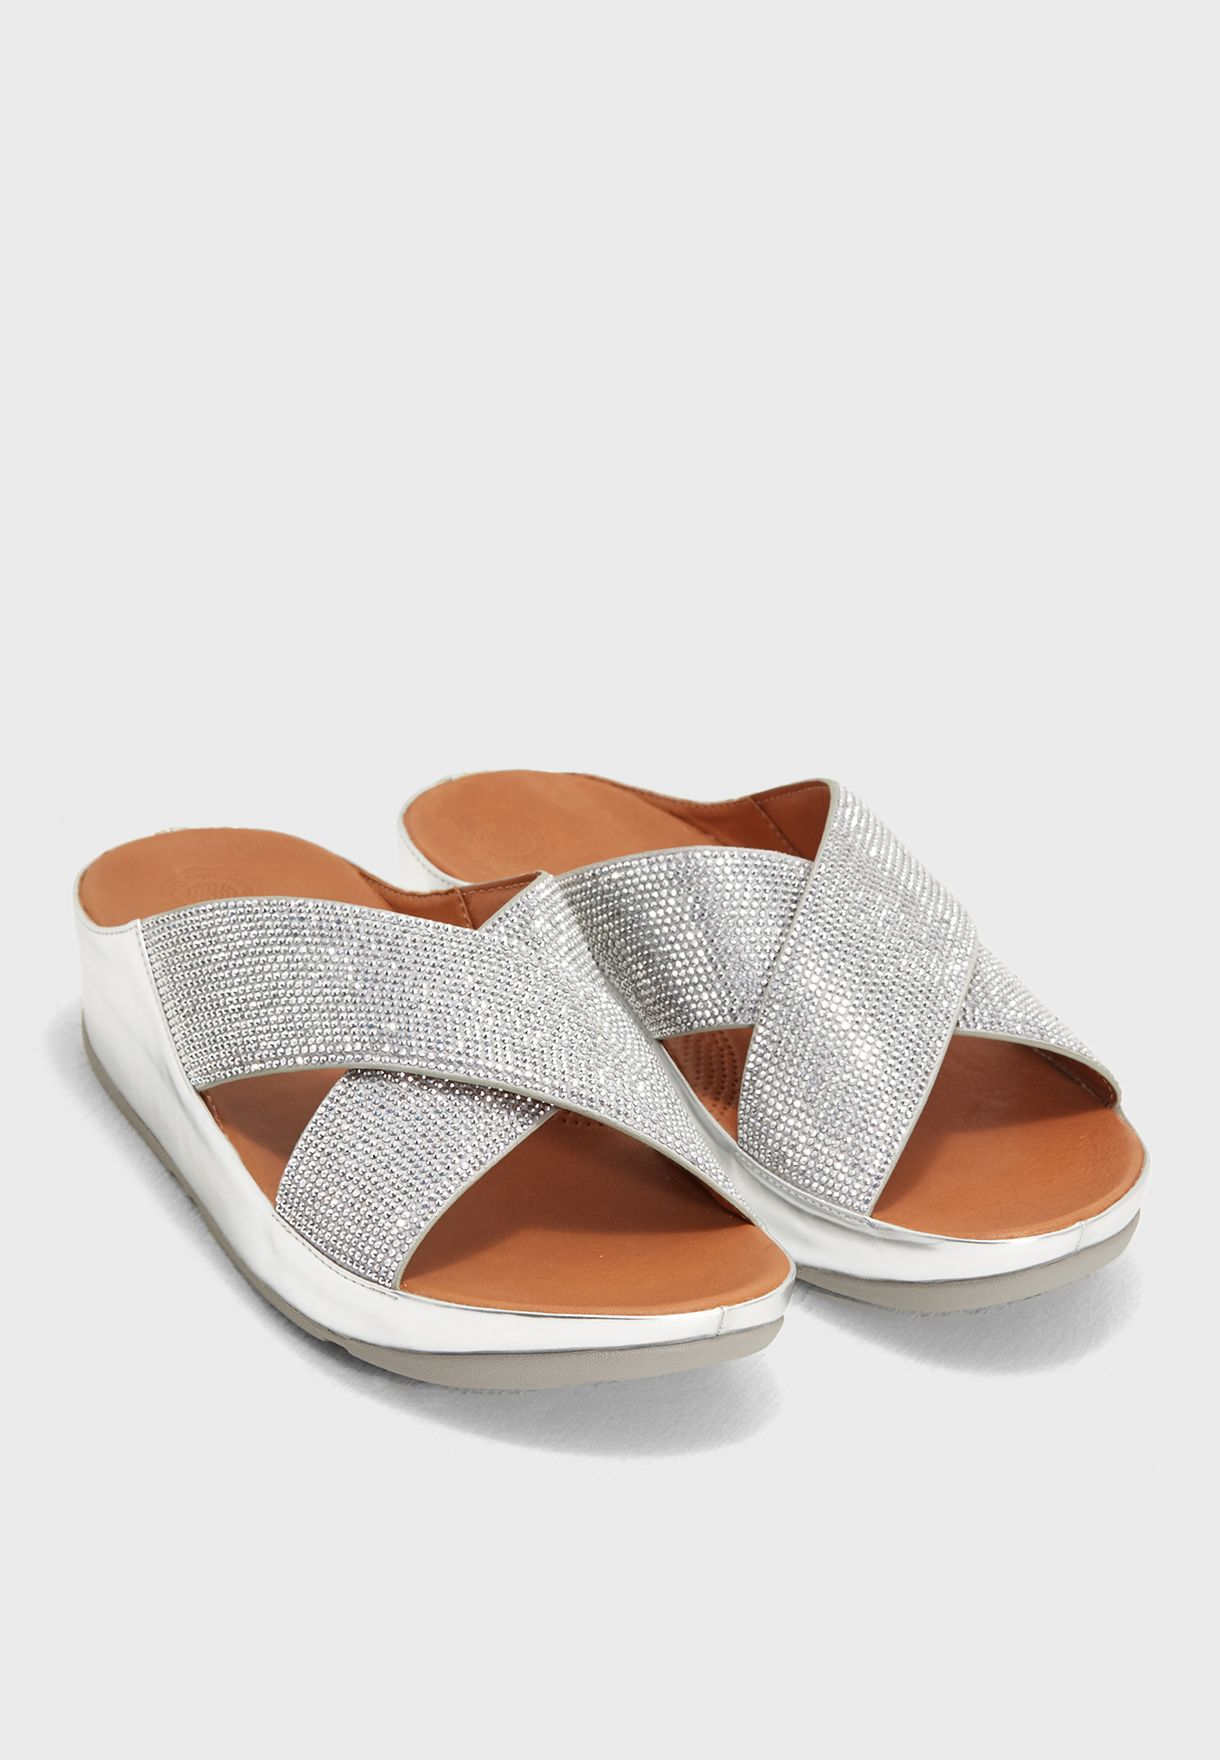 39ebd5fa547643 Shop Fitflop silver Crystall Slide J55-527 for Women in UAE ...